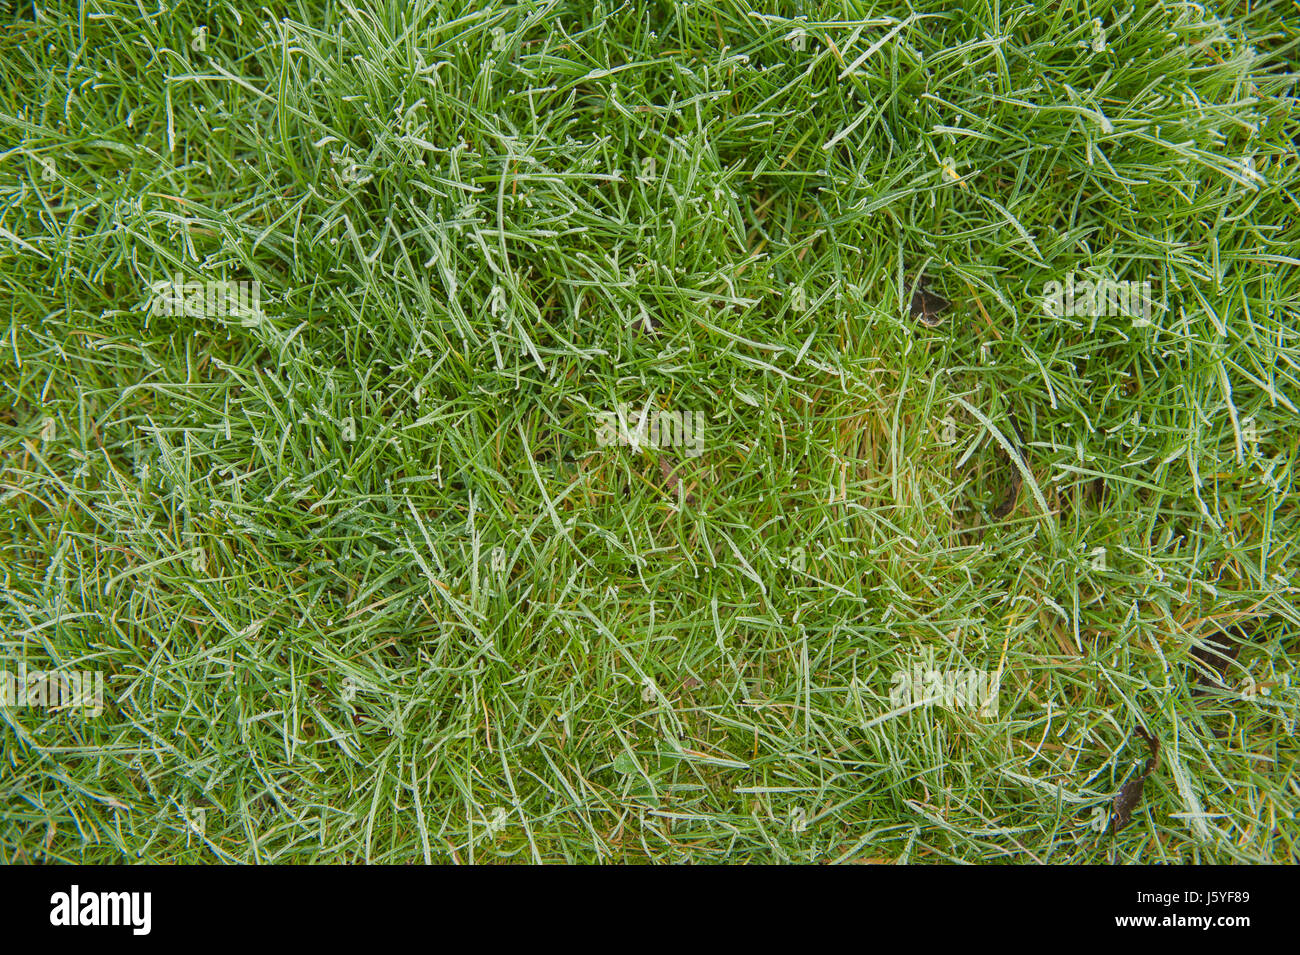 blades of grass lawn plan above view - Stock Image